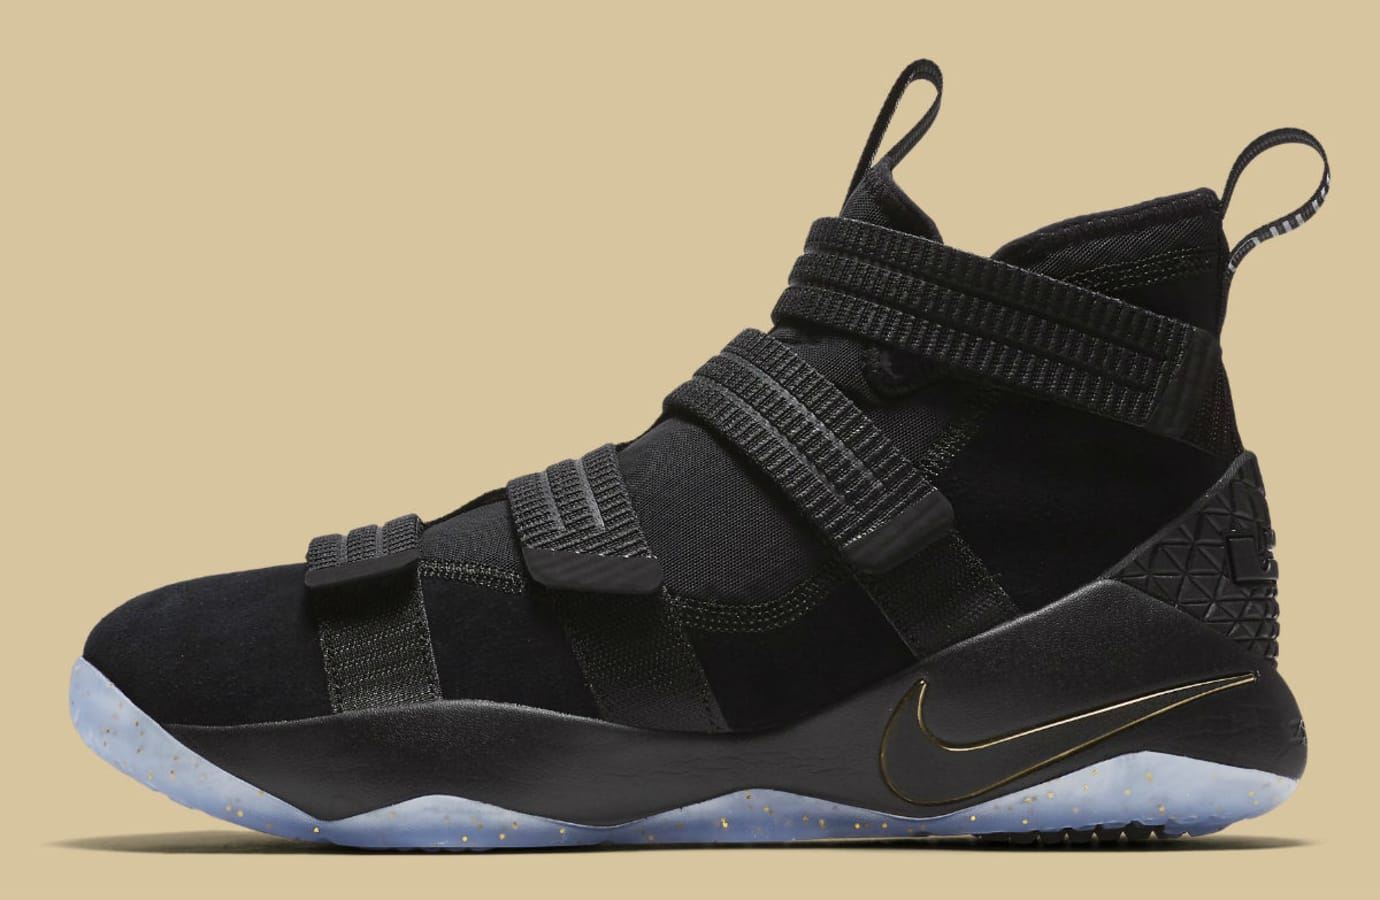 8f05db19afd Nike LeBron Soldier 11 SFG Black Gold Finals Release Date Profile